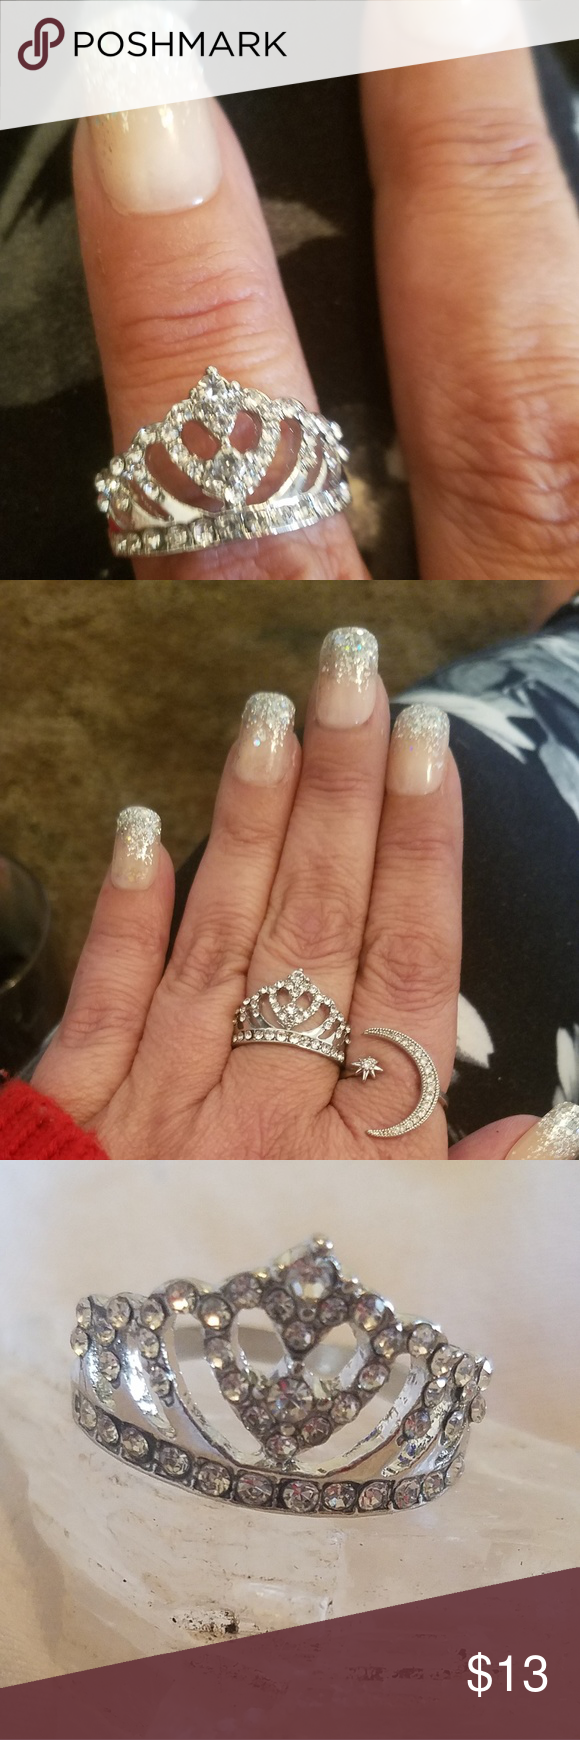 Princess Queen Crown Ring size 9 Boutique Moon and star